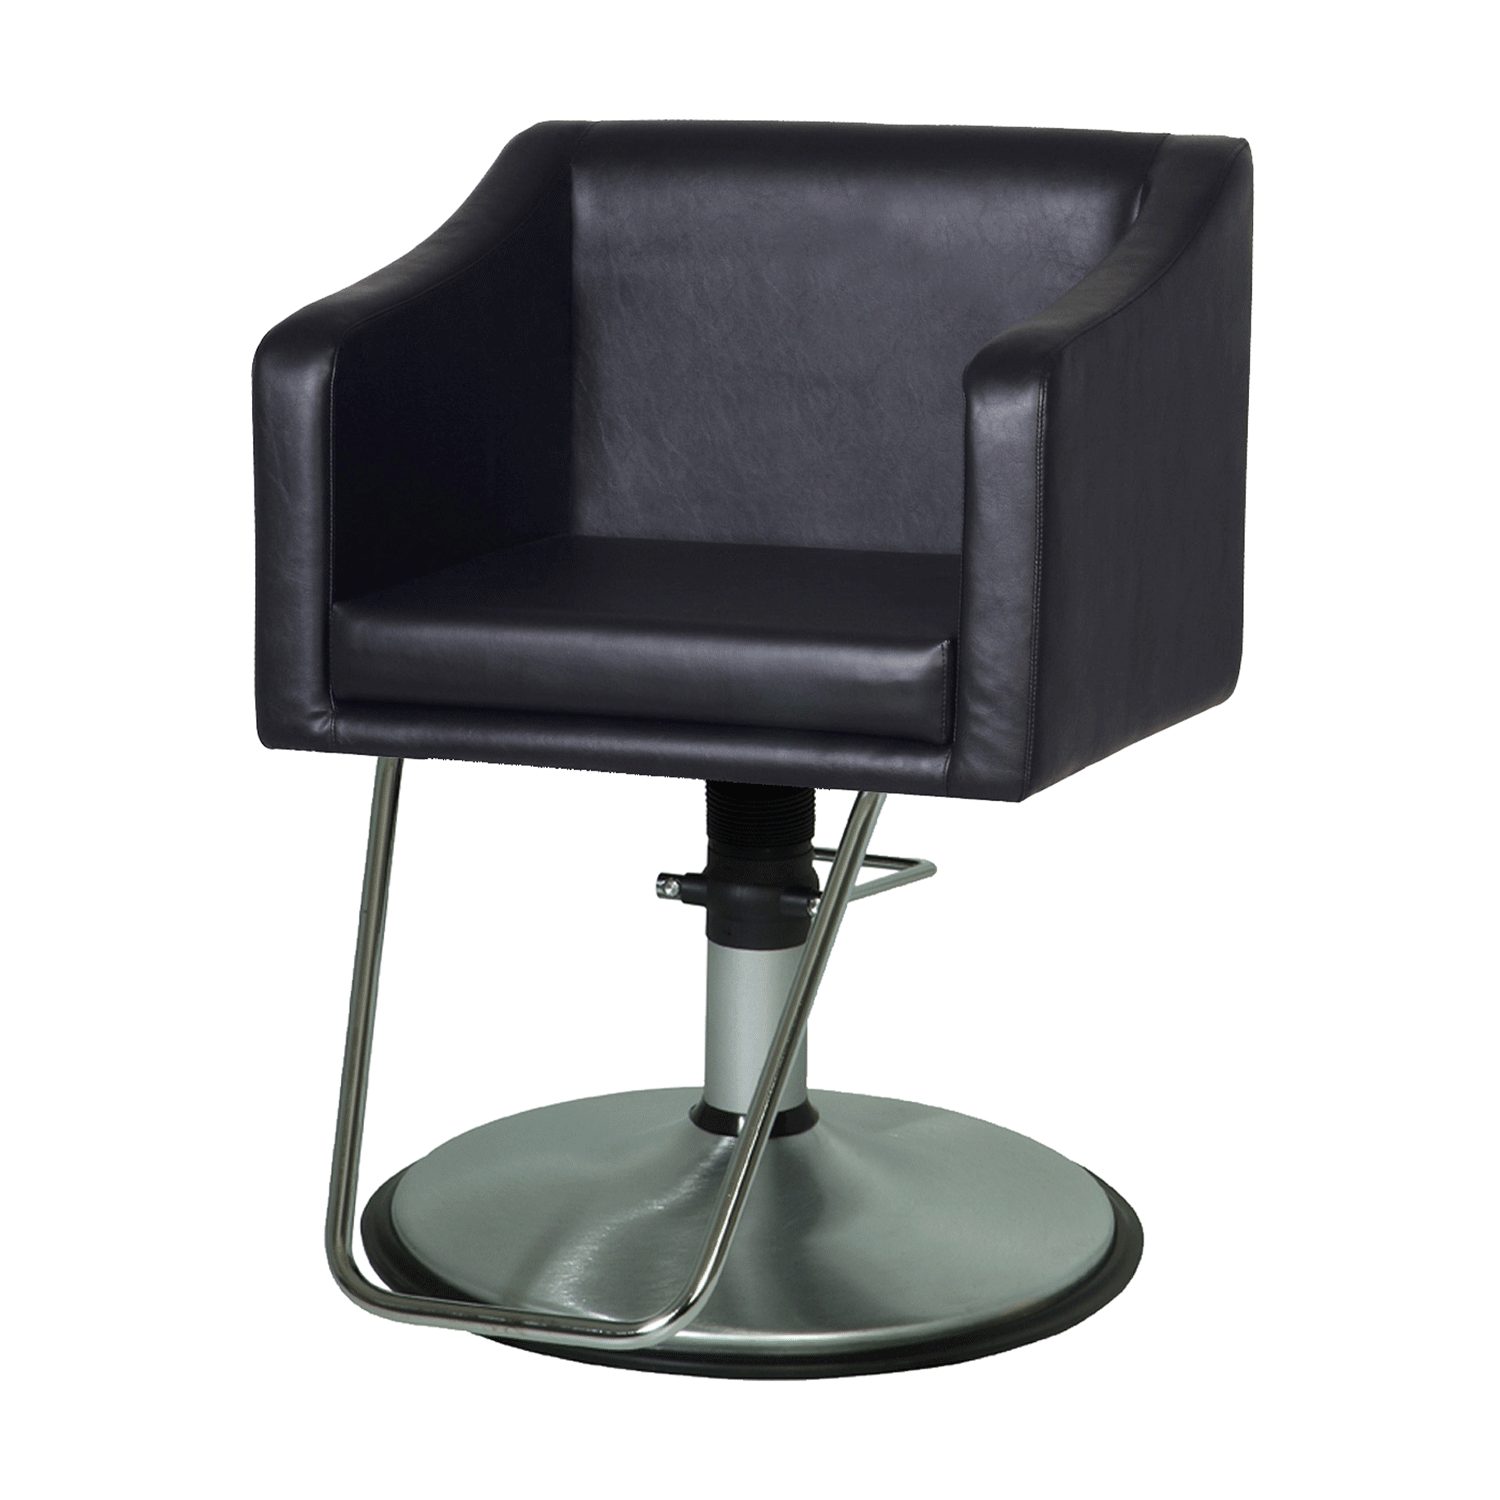 stylist chair for sale ergonomic how to adjust salon chairs belvederelook styling